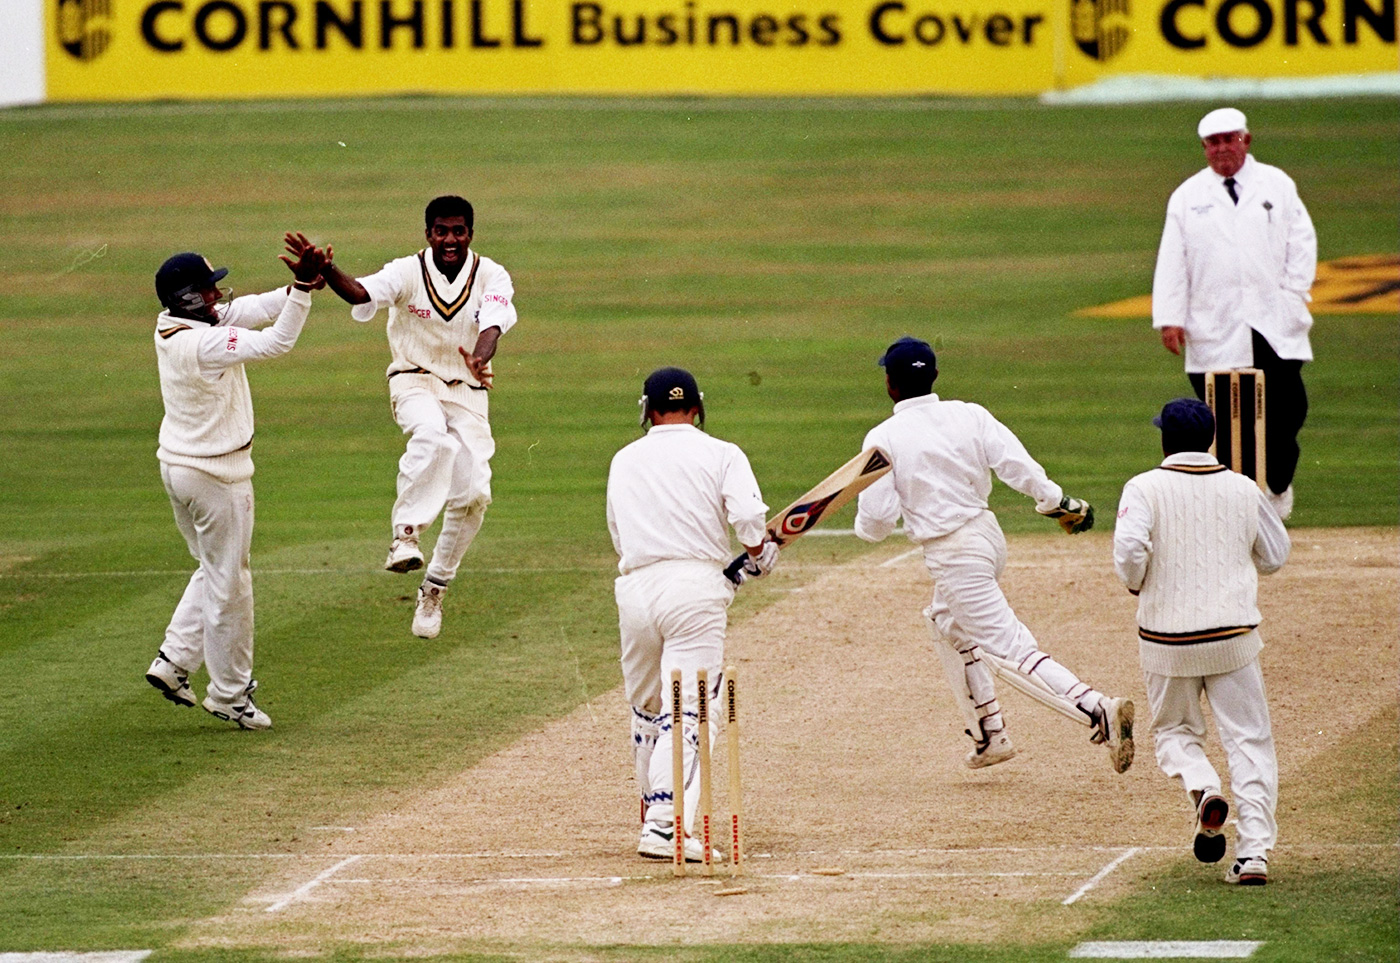 Muttiah Muralitharan takes the wicket of Darren Gough